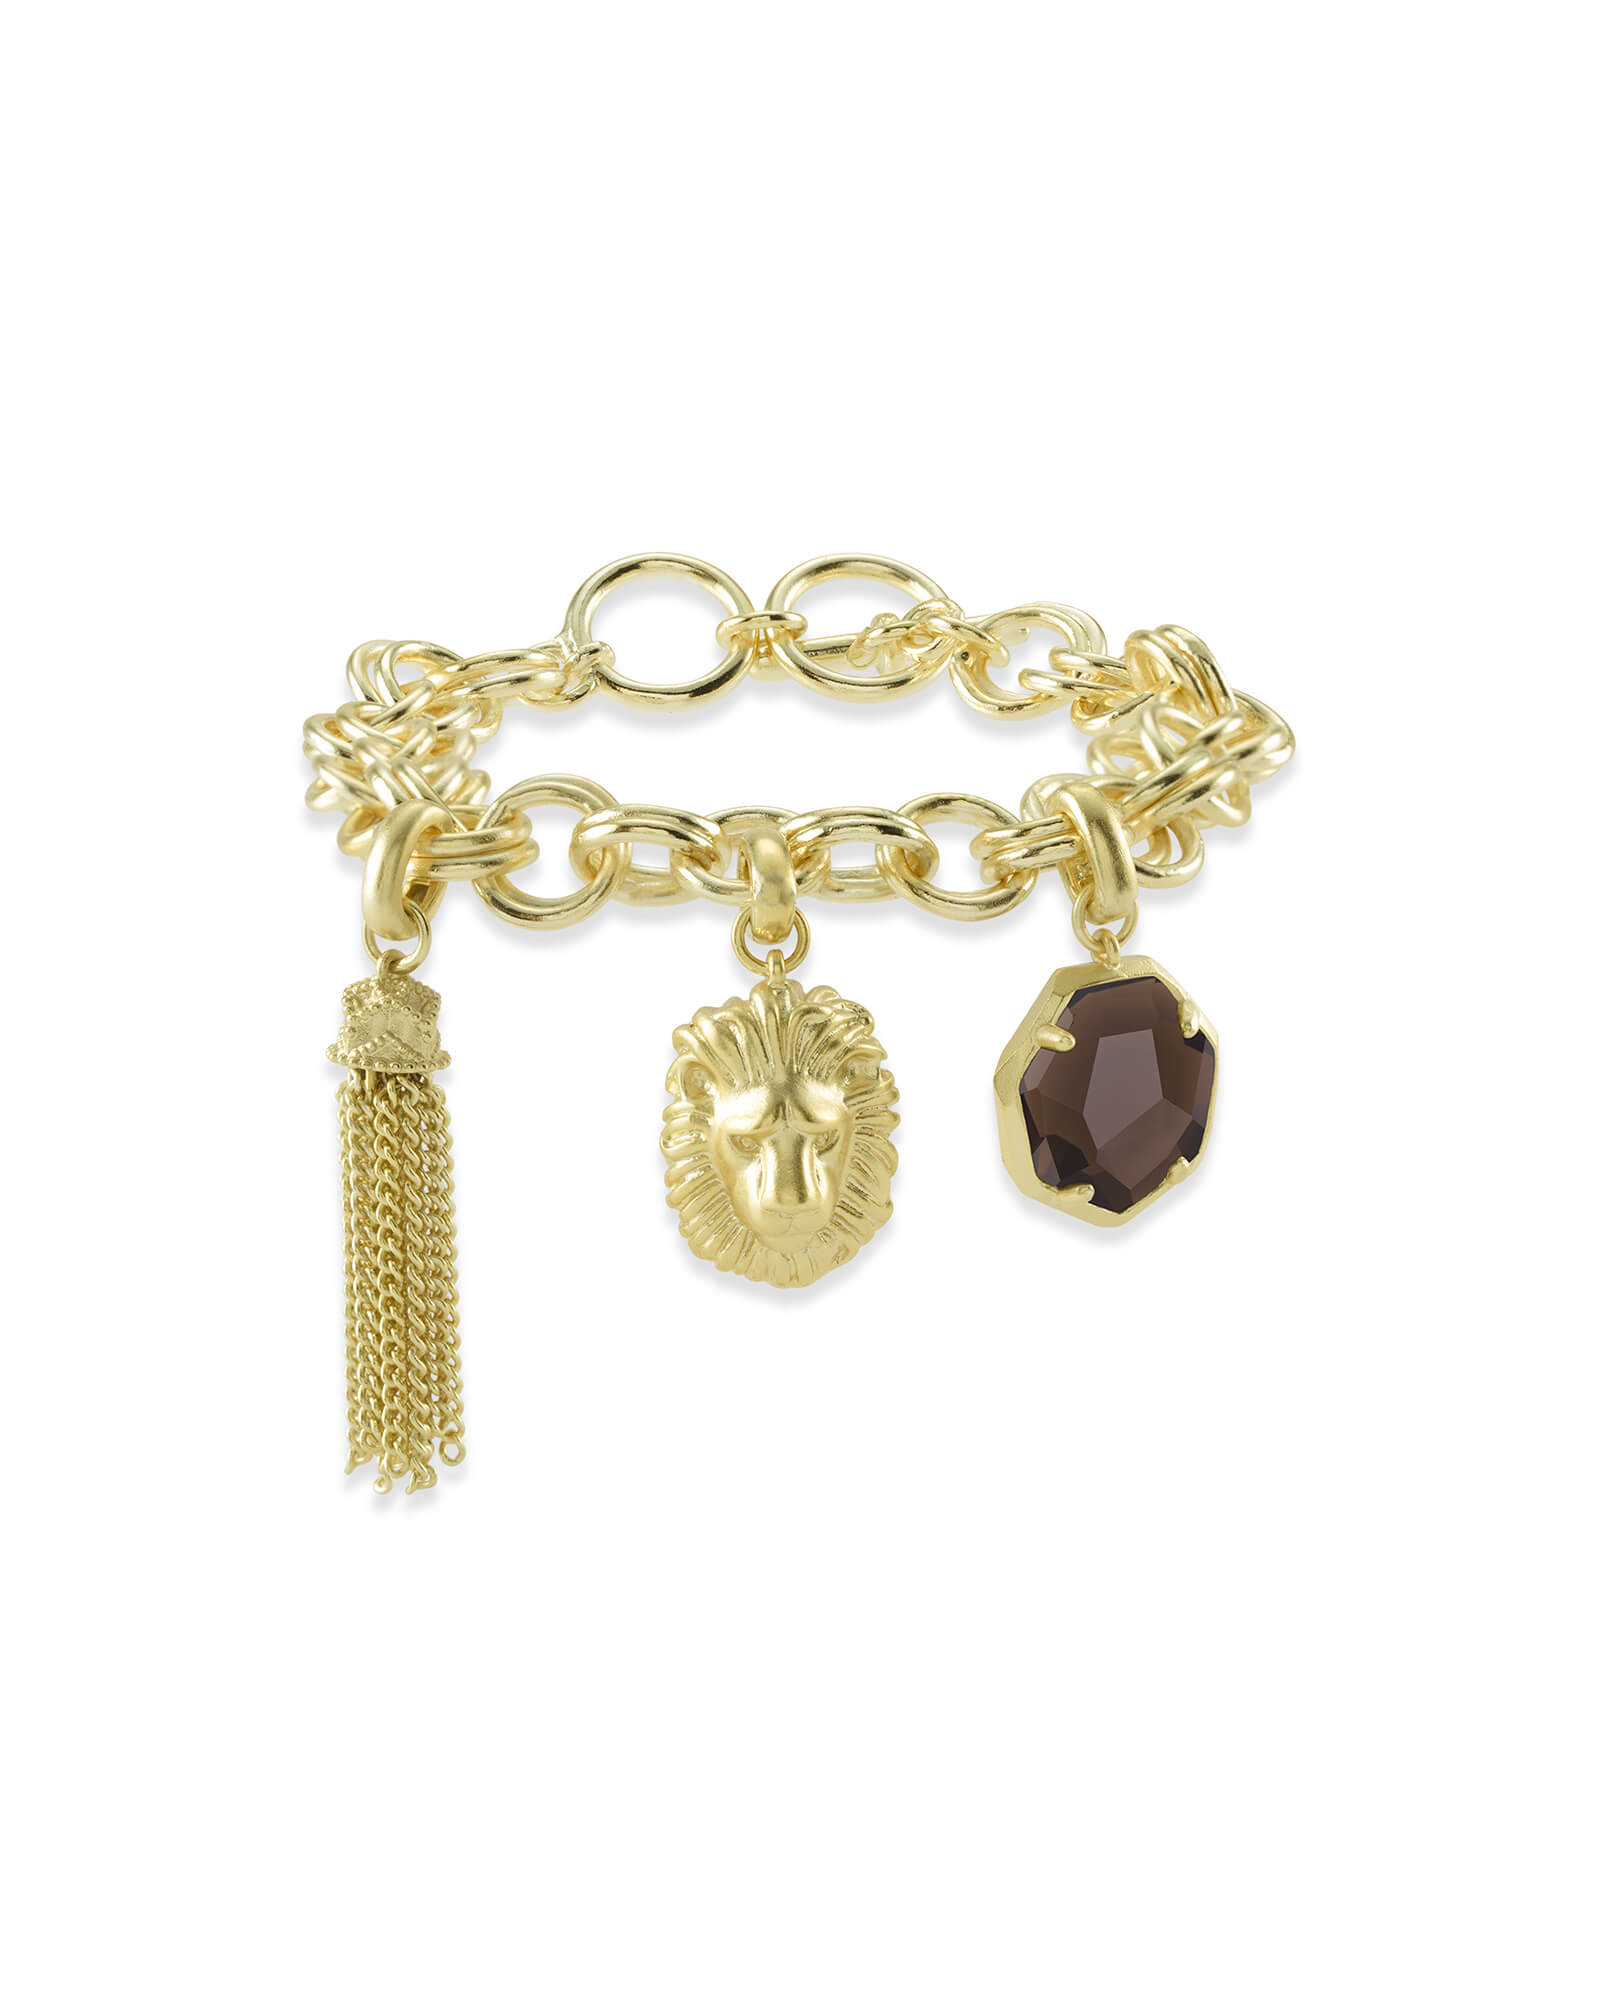 Charm Bracelet Jewelry: Fierce Charm Bracelet Set In Gold